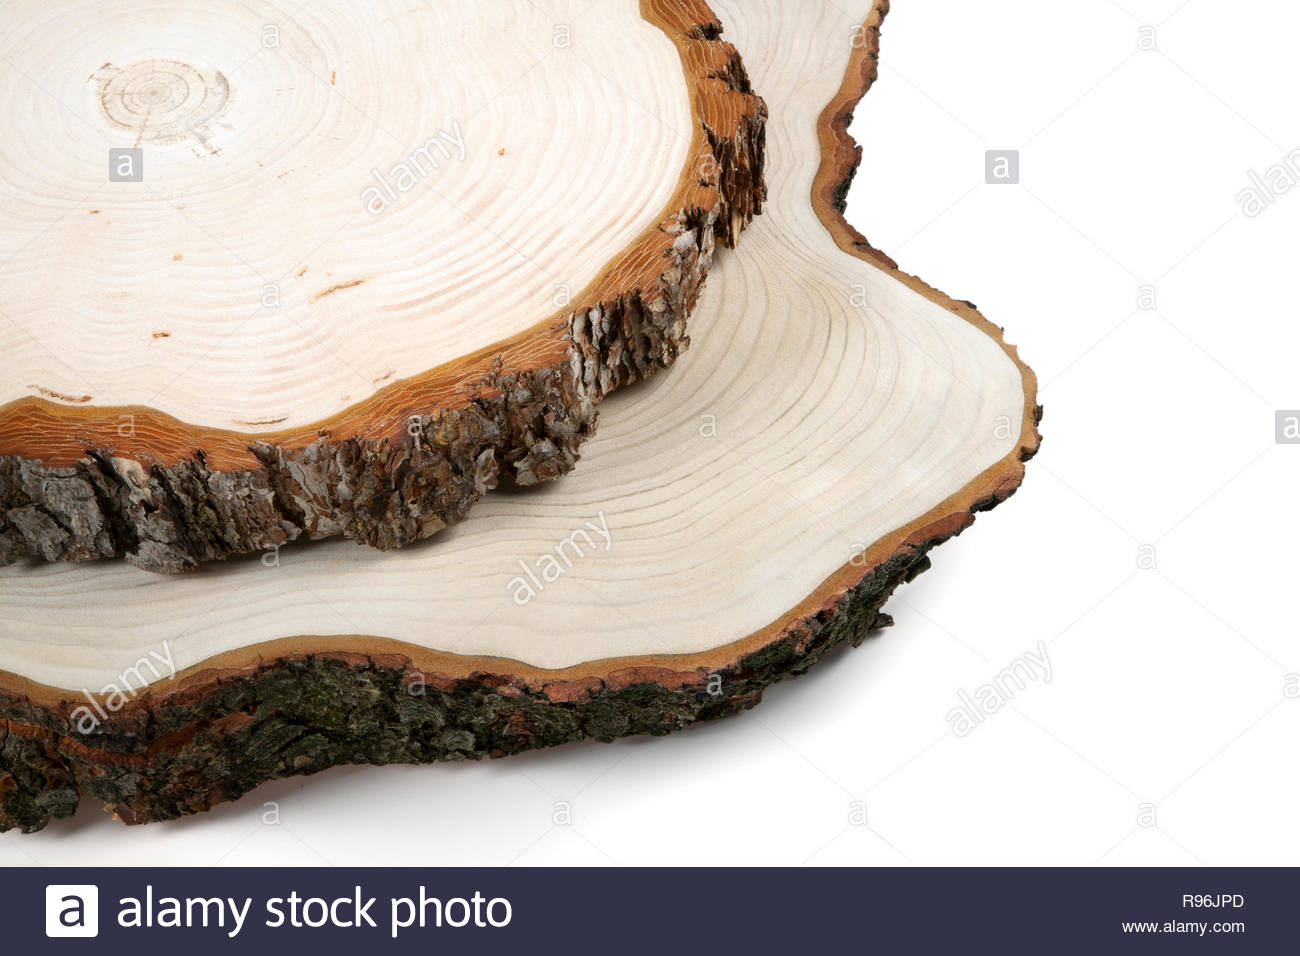 Woden cut texture. Cut of tree isolated on white. Nature abstract background. Stock Photo